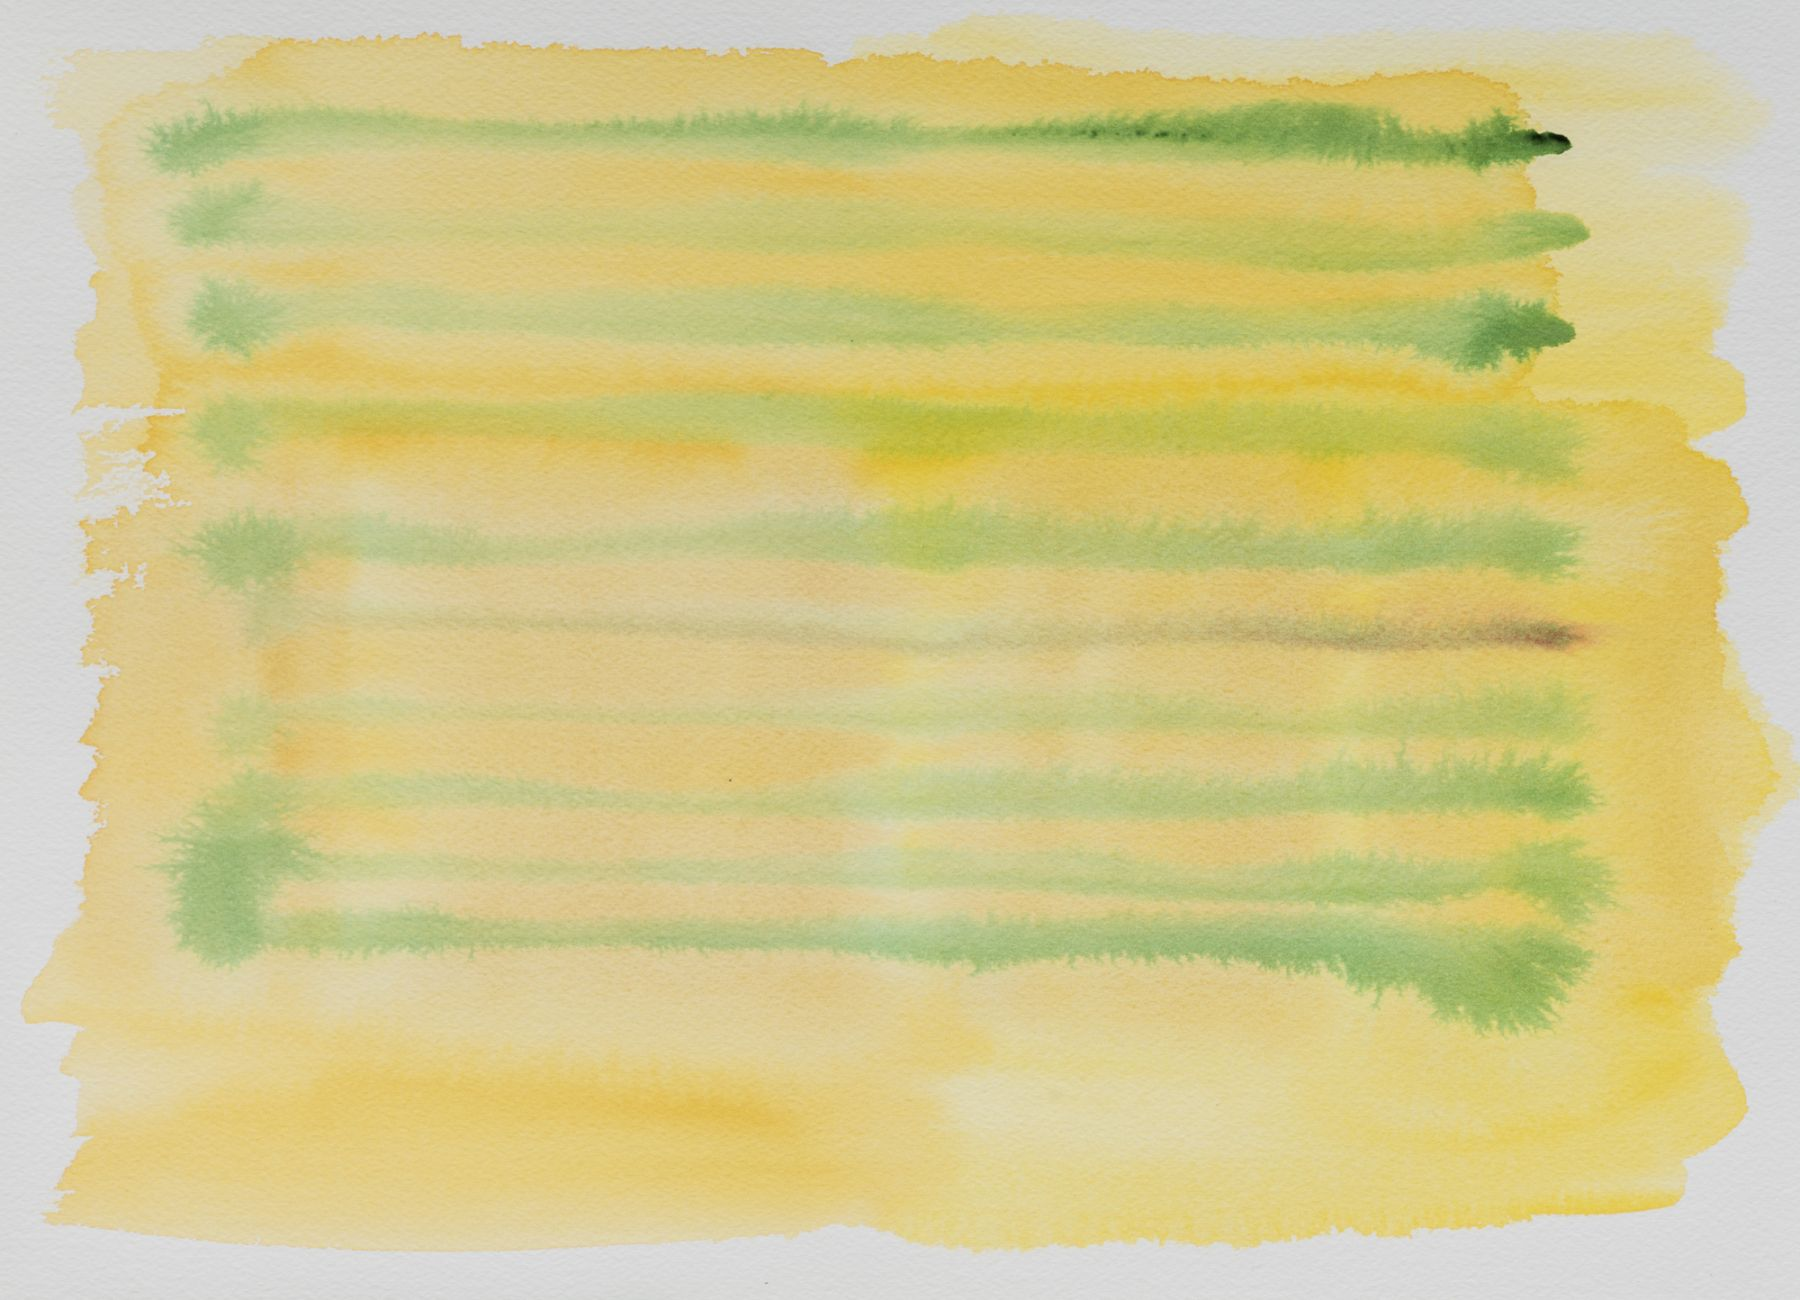 Felrath Hines, Untitled, 1980s,  Watercolor on paper,  10 x 14.25 inches. Horizontal green and yellow brush strokes. Felrath Hines worked to create universal visual idioms from a place of complex personal experience. His figurative and cubist-style artwork morphed into soft-edged organic abstracts as he grappled with hues in his chosen oil medium.